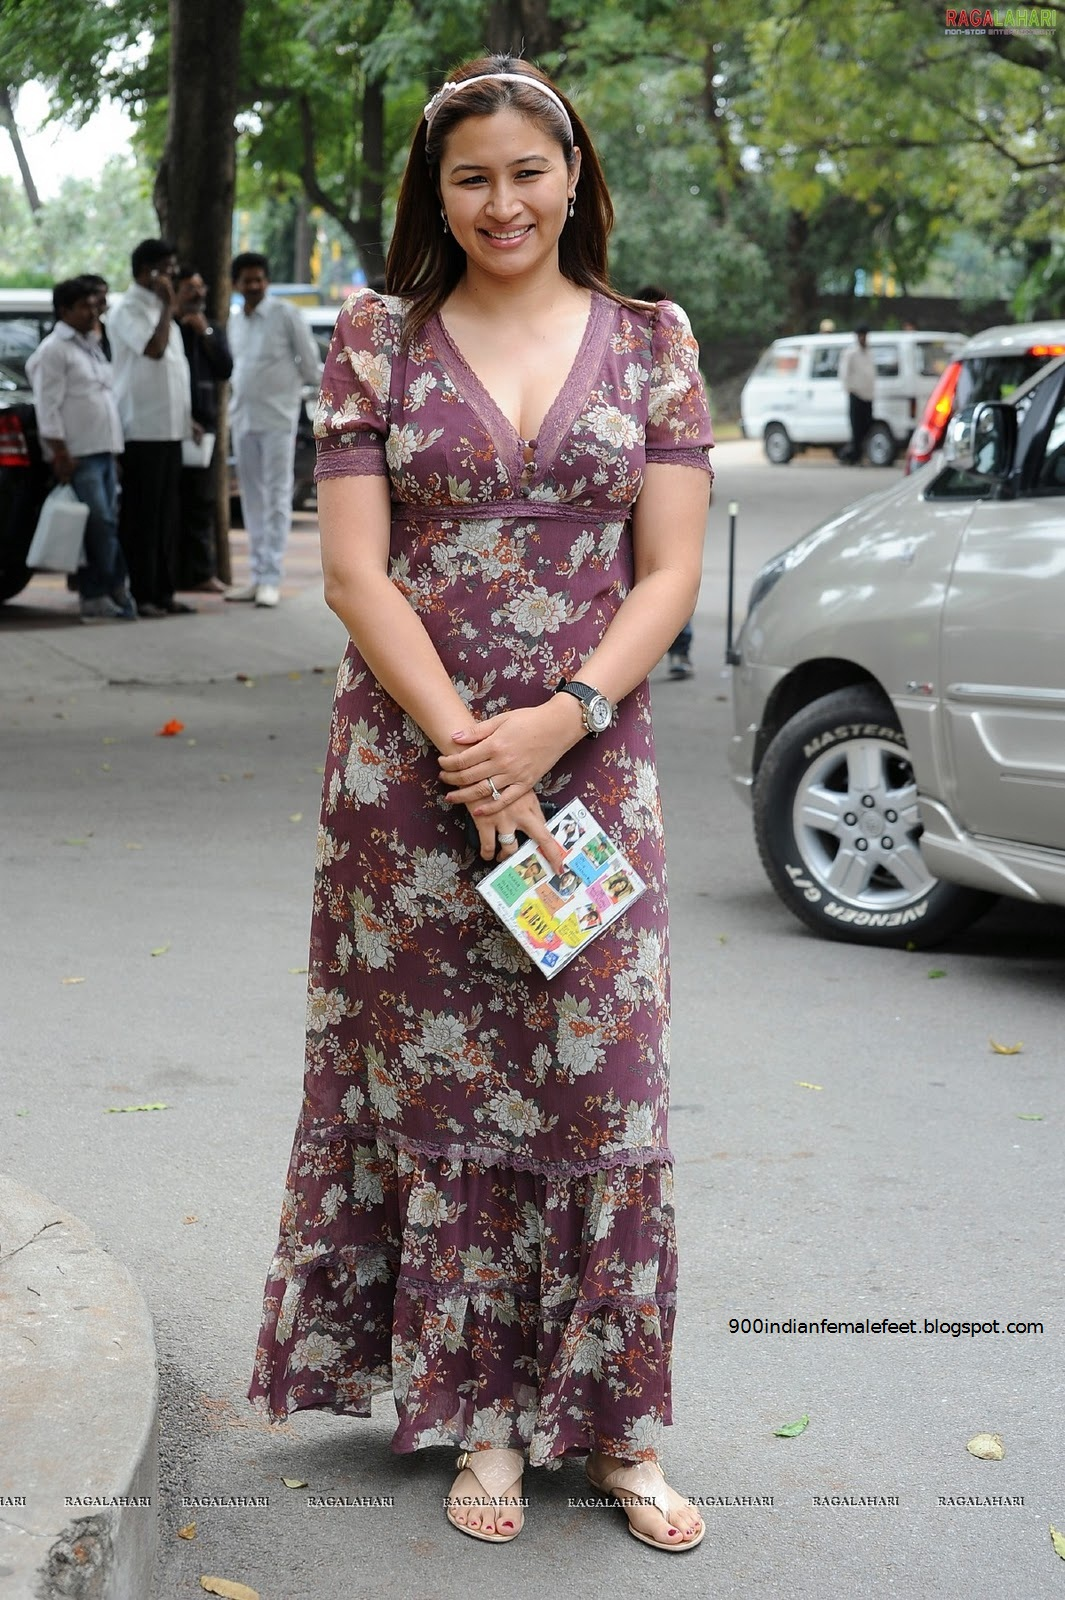 Badminton sensation Jwala Gutta's beautiful feet